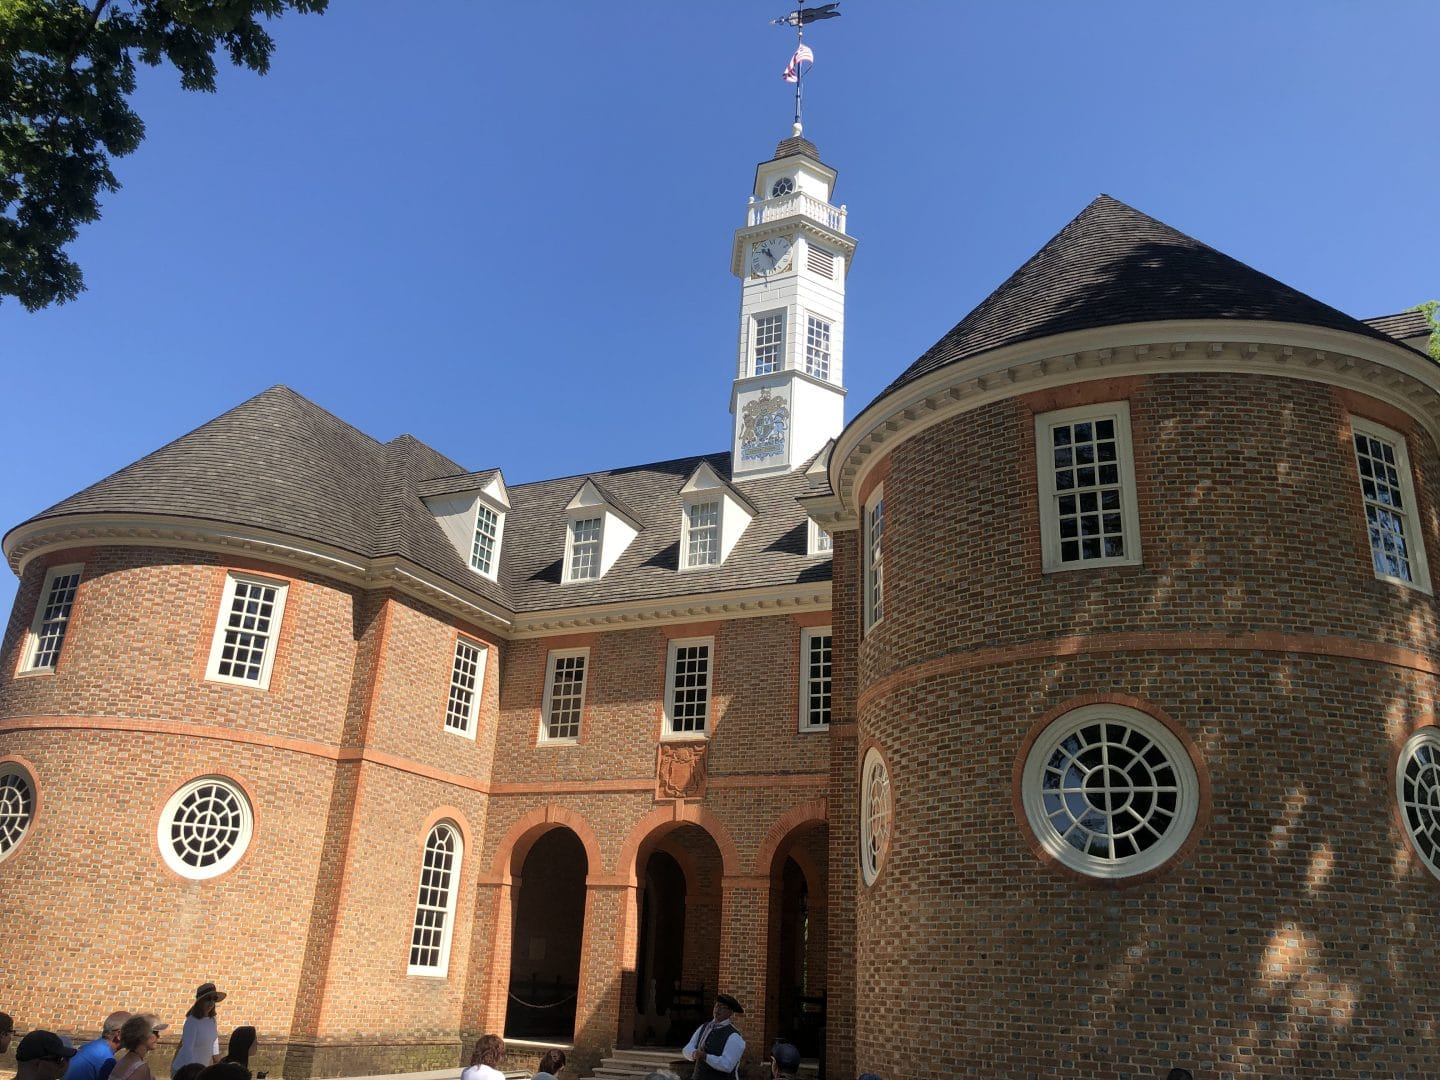 the capitol building in Colonial Williamsburg